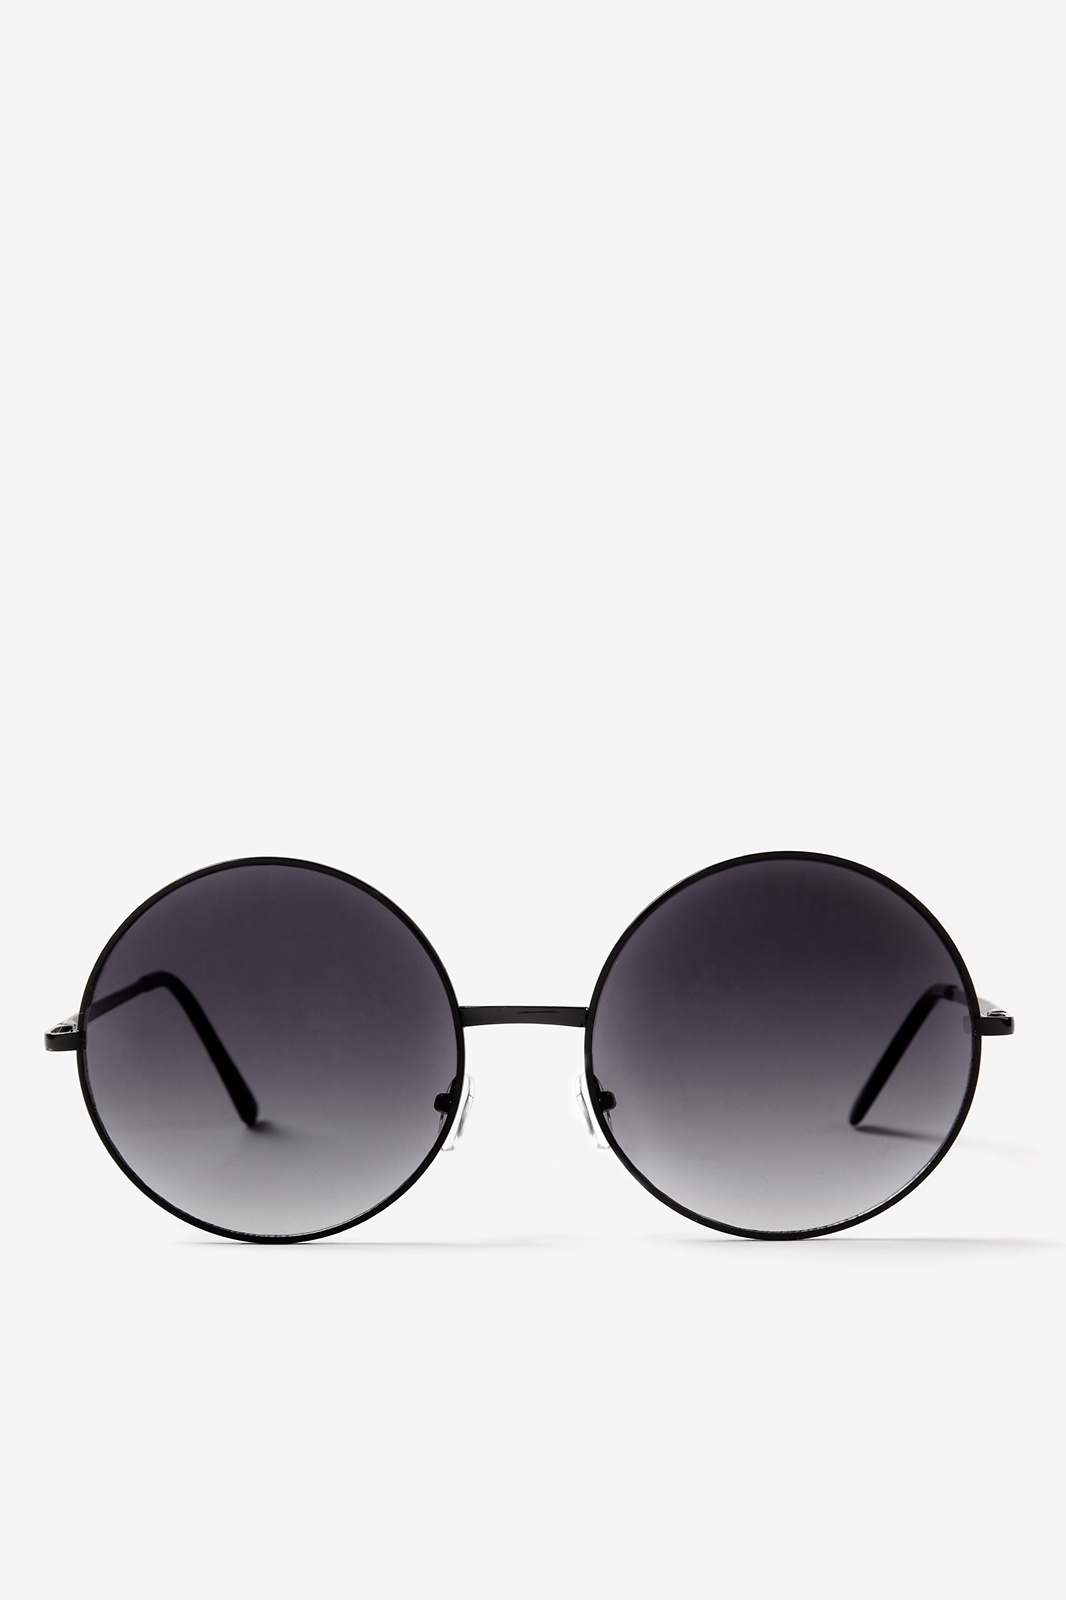 8b06d33a57 Black Smoke Acetate Penny Sunglasses